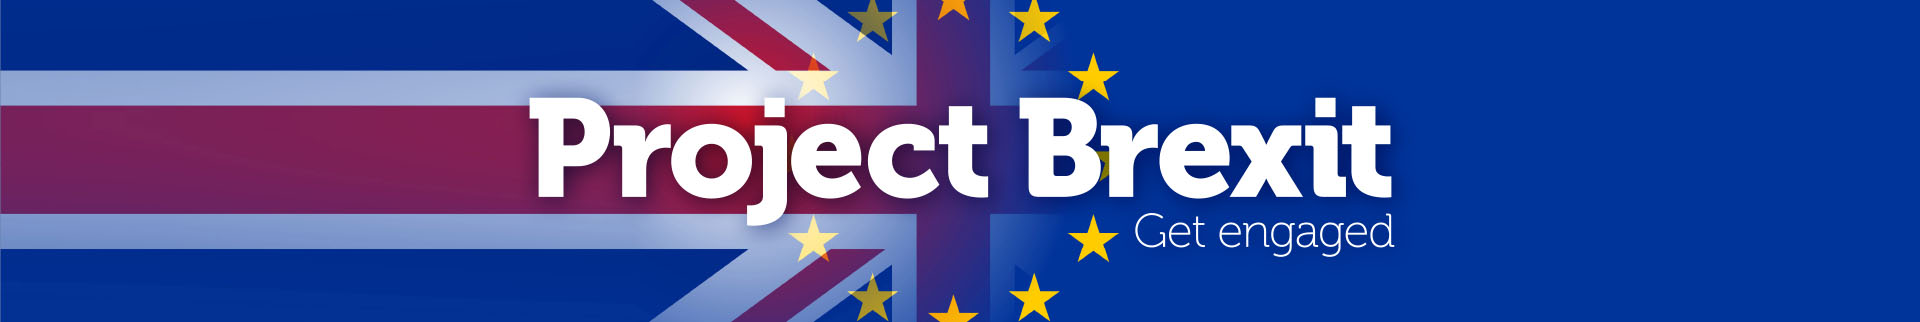 Project Brexit